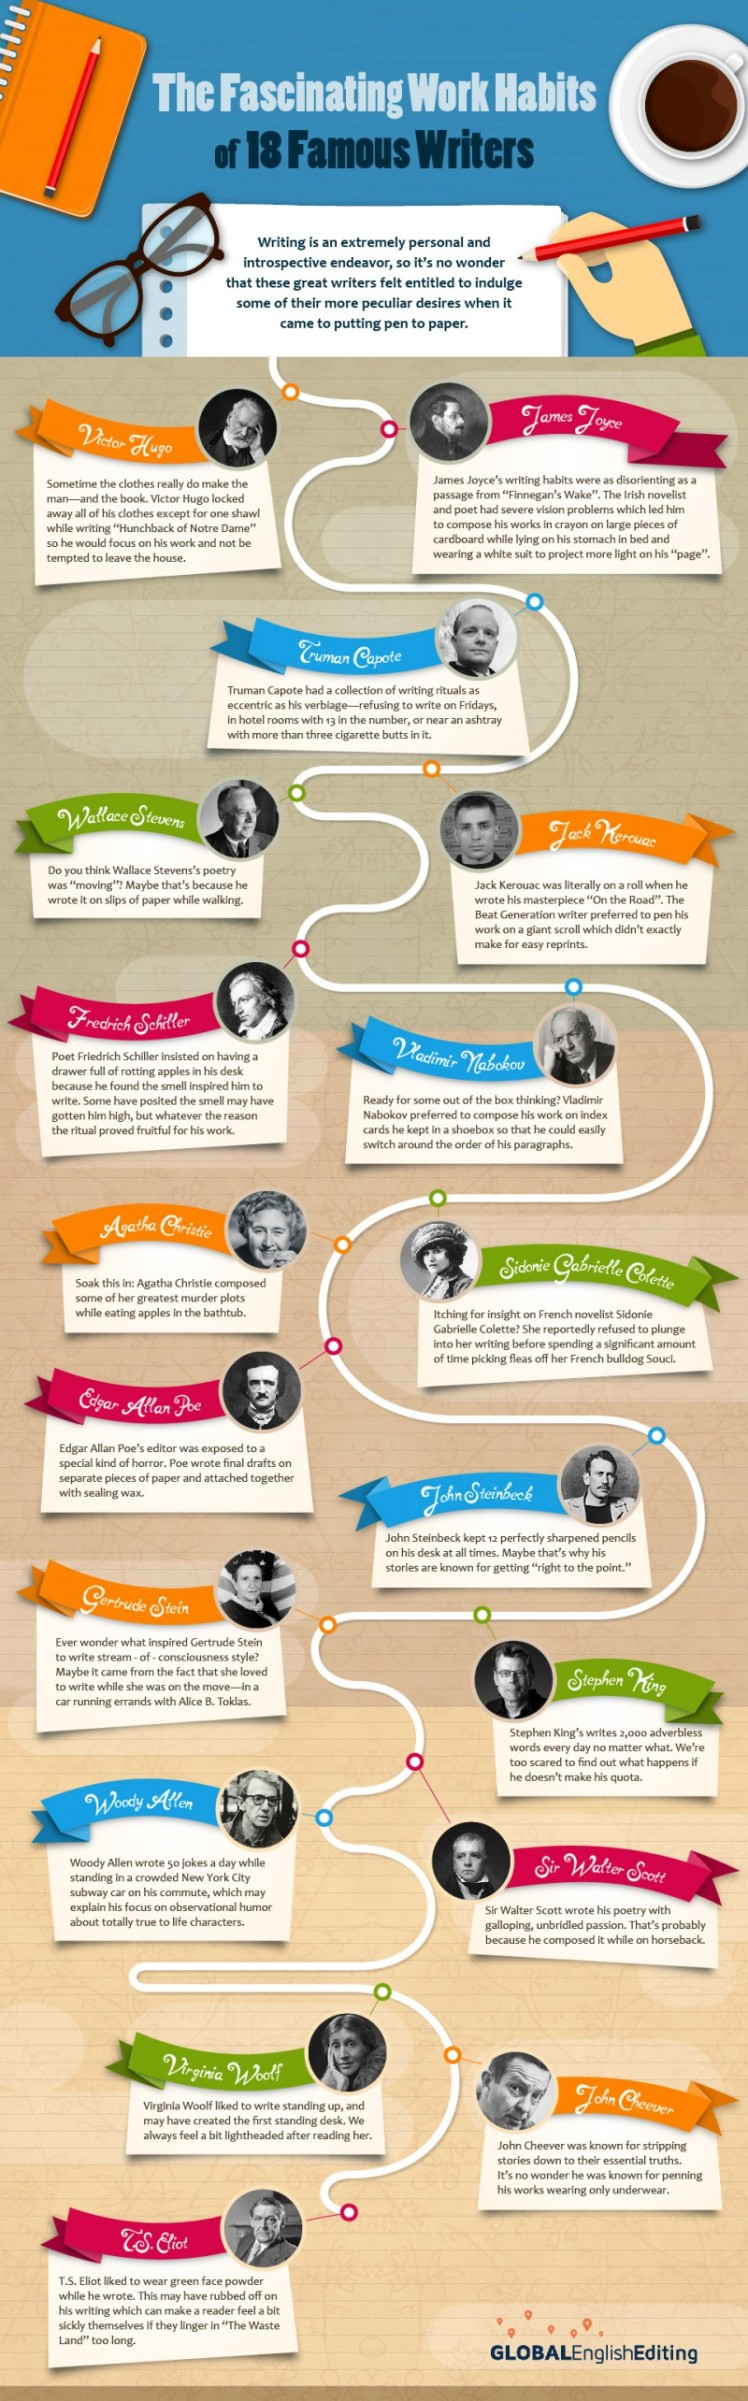 Fascinating Habits of 18 Famous Writers Infographic